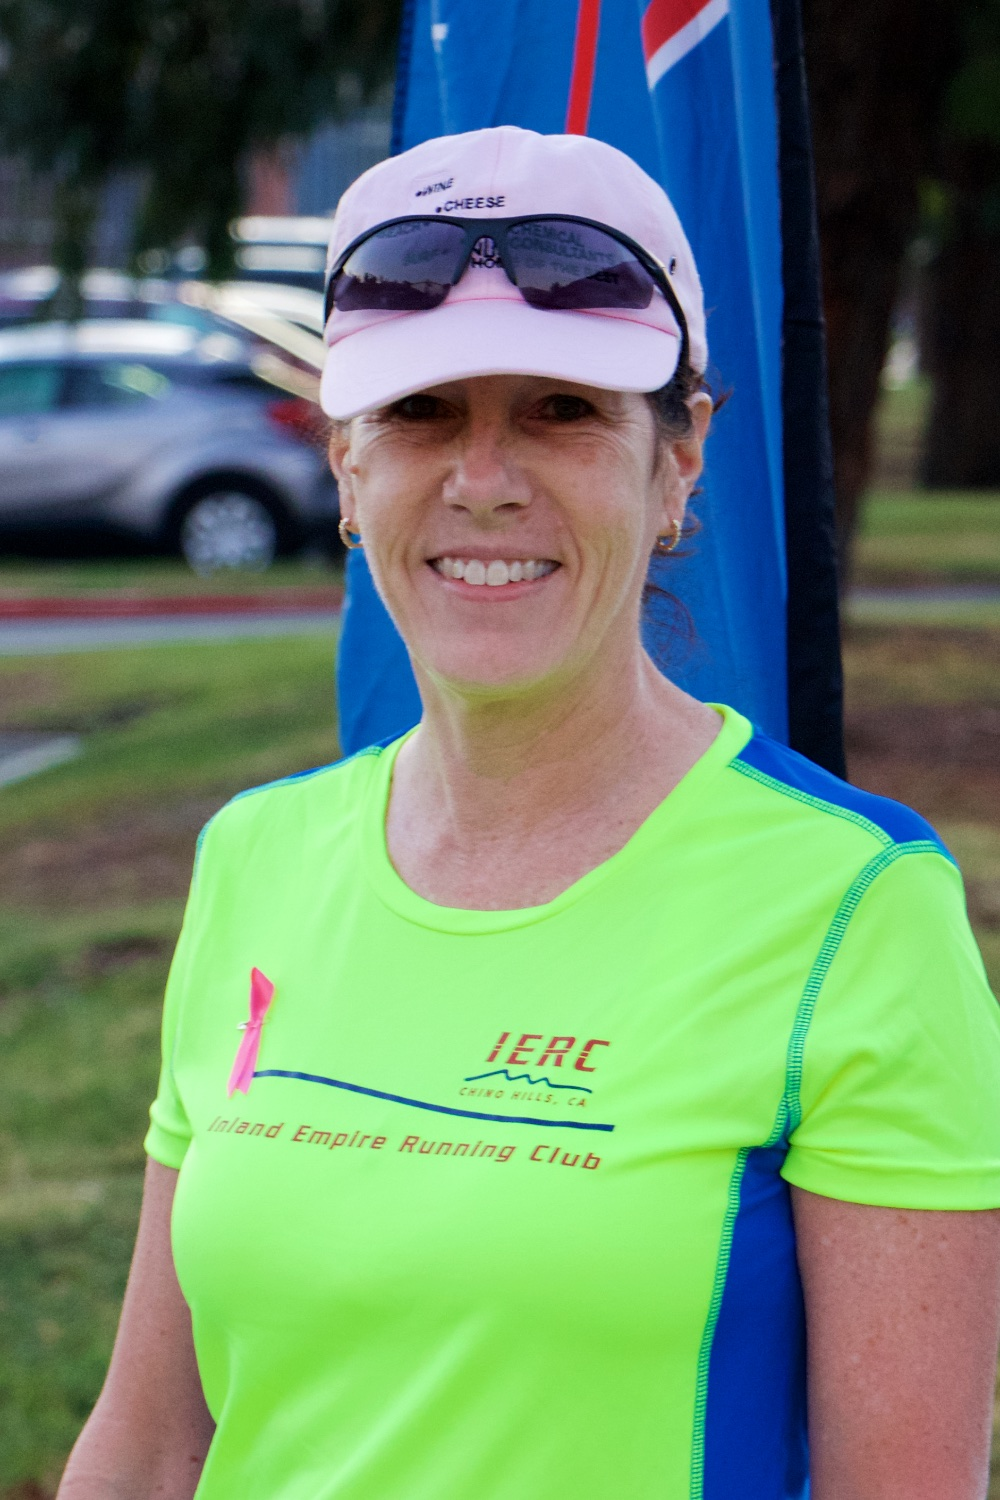 Diane Knight - 11:00/mile race pace12:30/mile aerobic pace